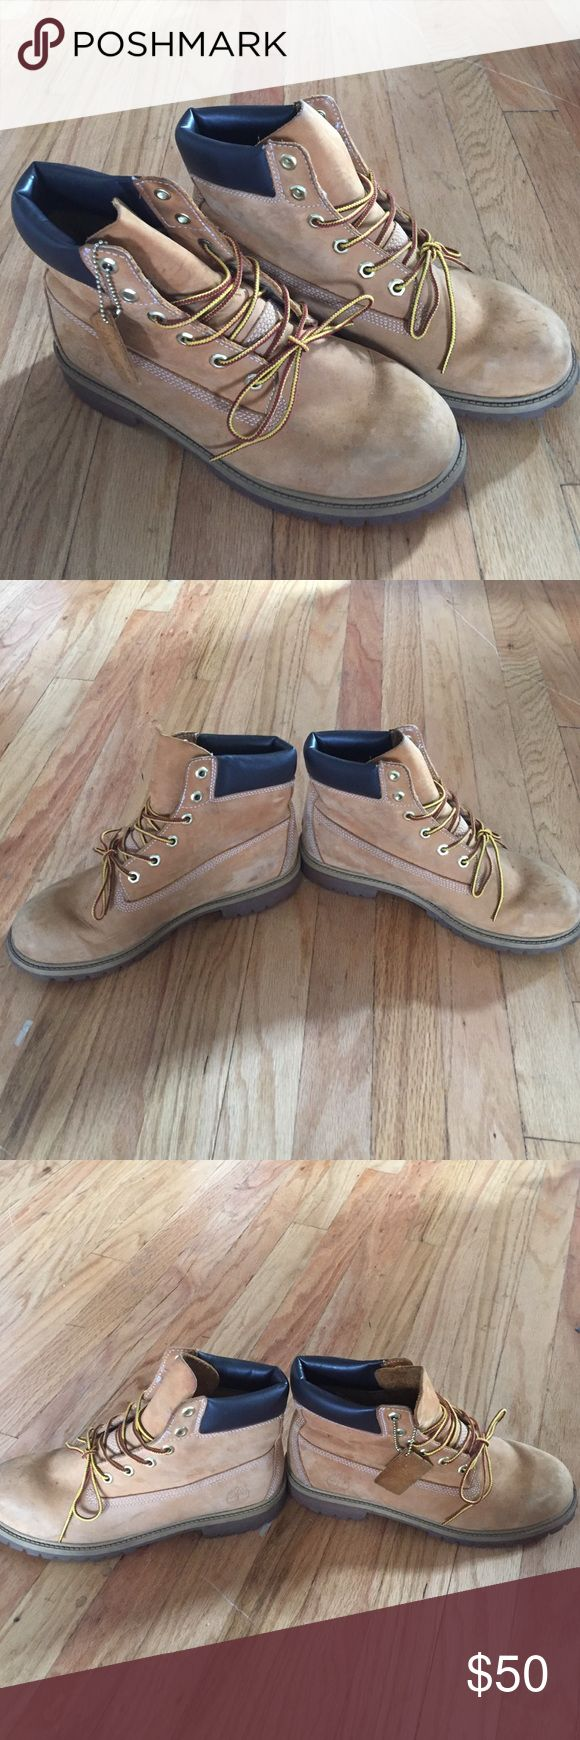 Wheat Timberland Boots What's Timberland boots works multiple times but still in decent condition! Perfect for winter months coming ahead. Size 7 in kids. Small scuffs on toe and on heel. I wear a 9 in women and can fit these. Size 8.5 would fit as well. Timberland Shoes Winter & Rain Boots